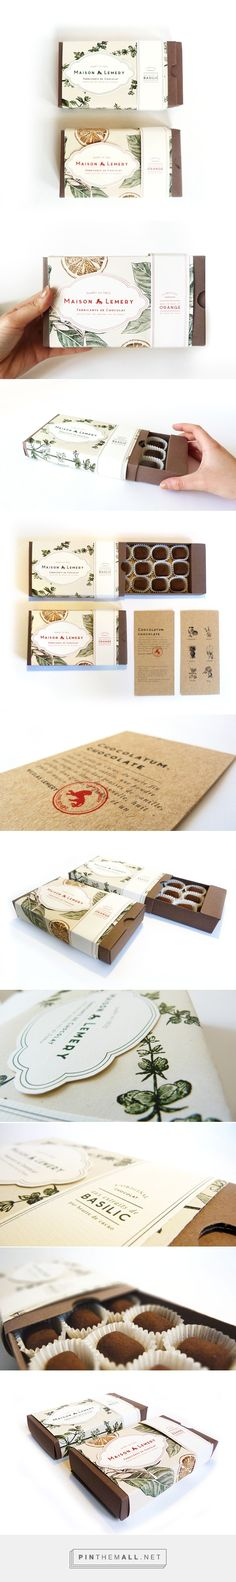 MAISON LEMERY - Chocolate Packaging on Packaging Design Served - Botanic concept